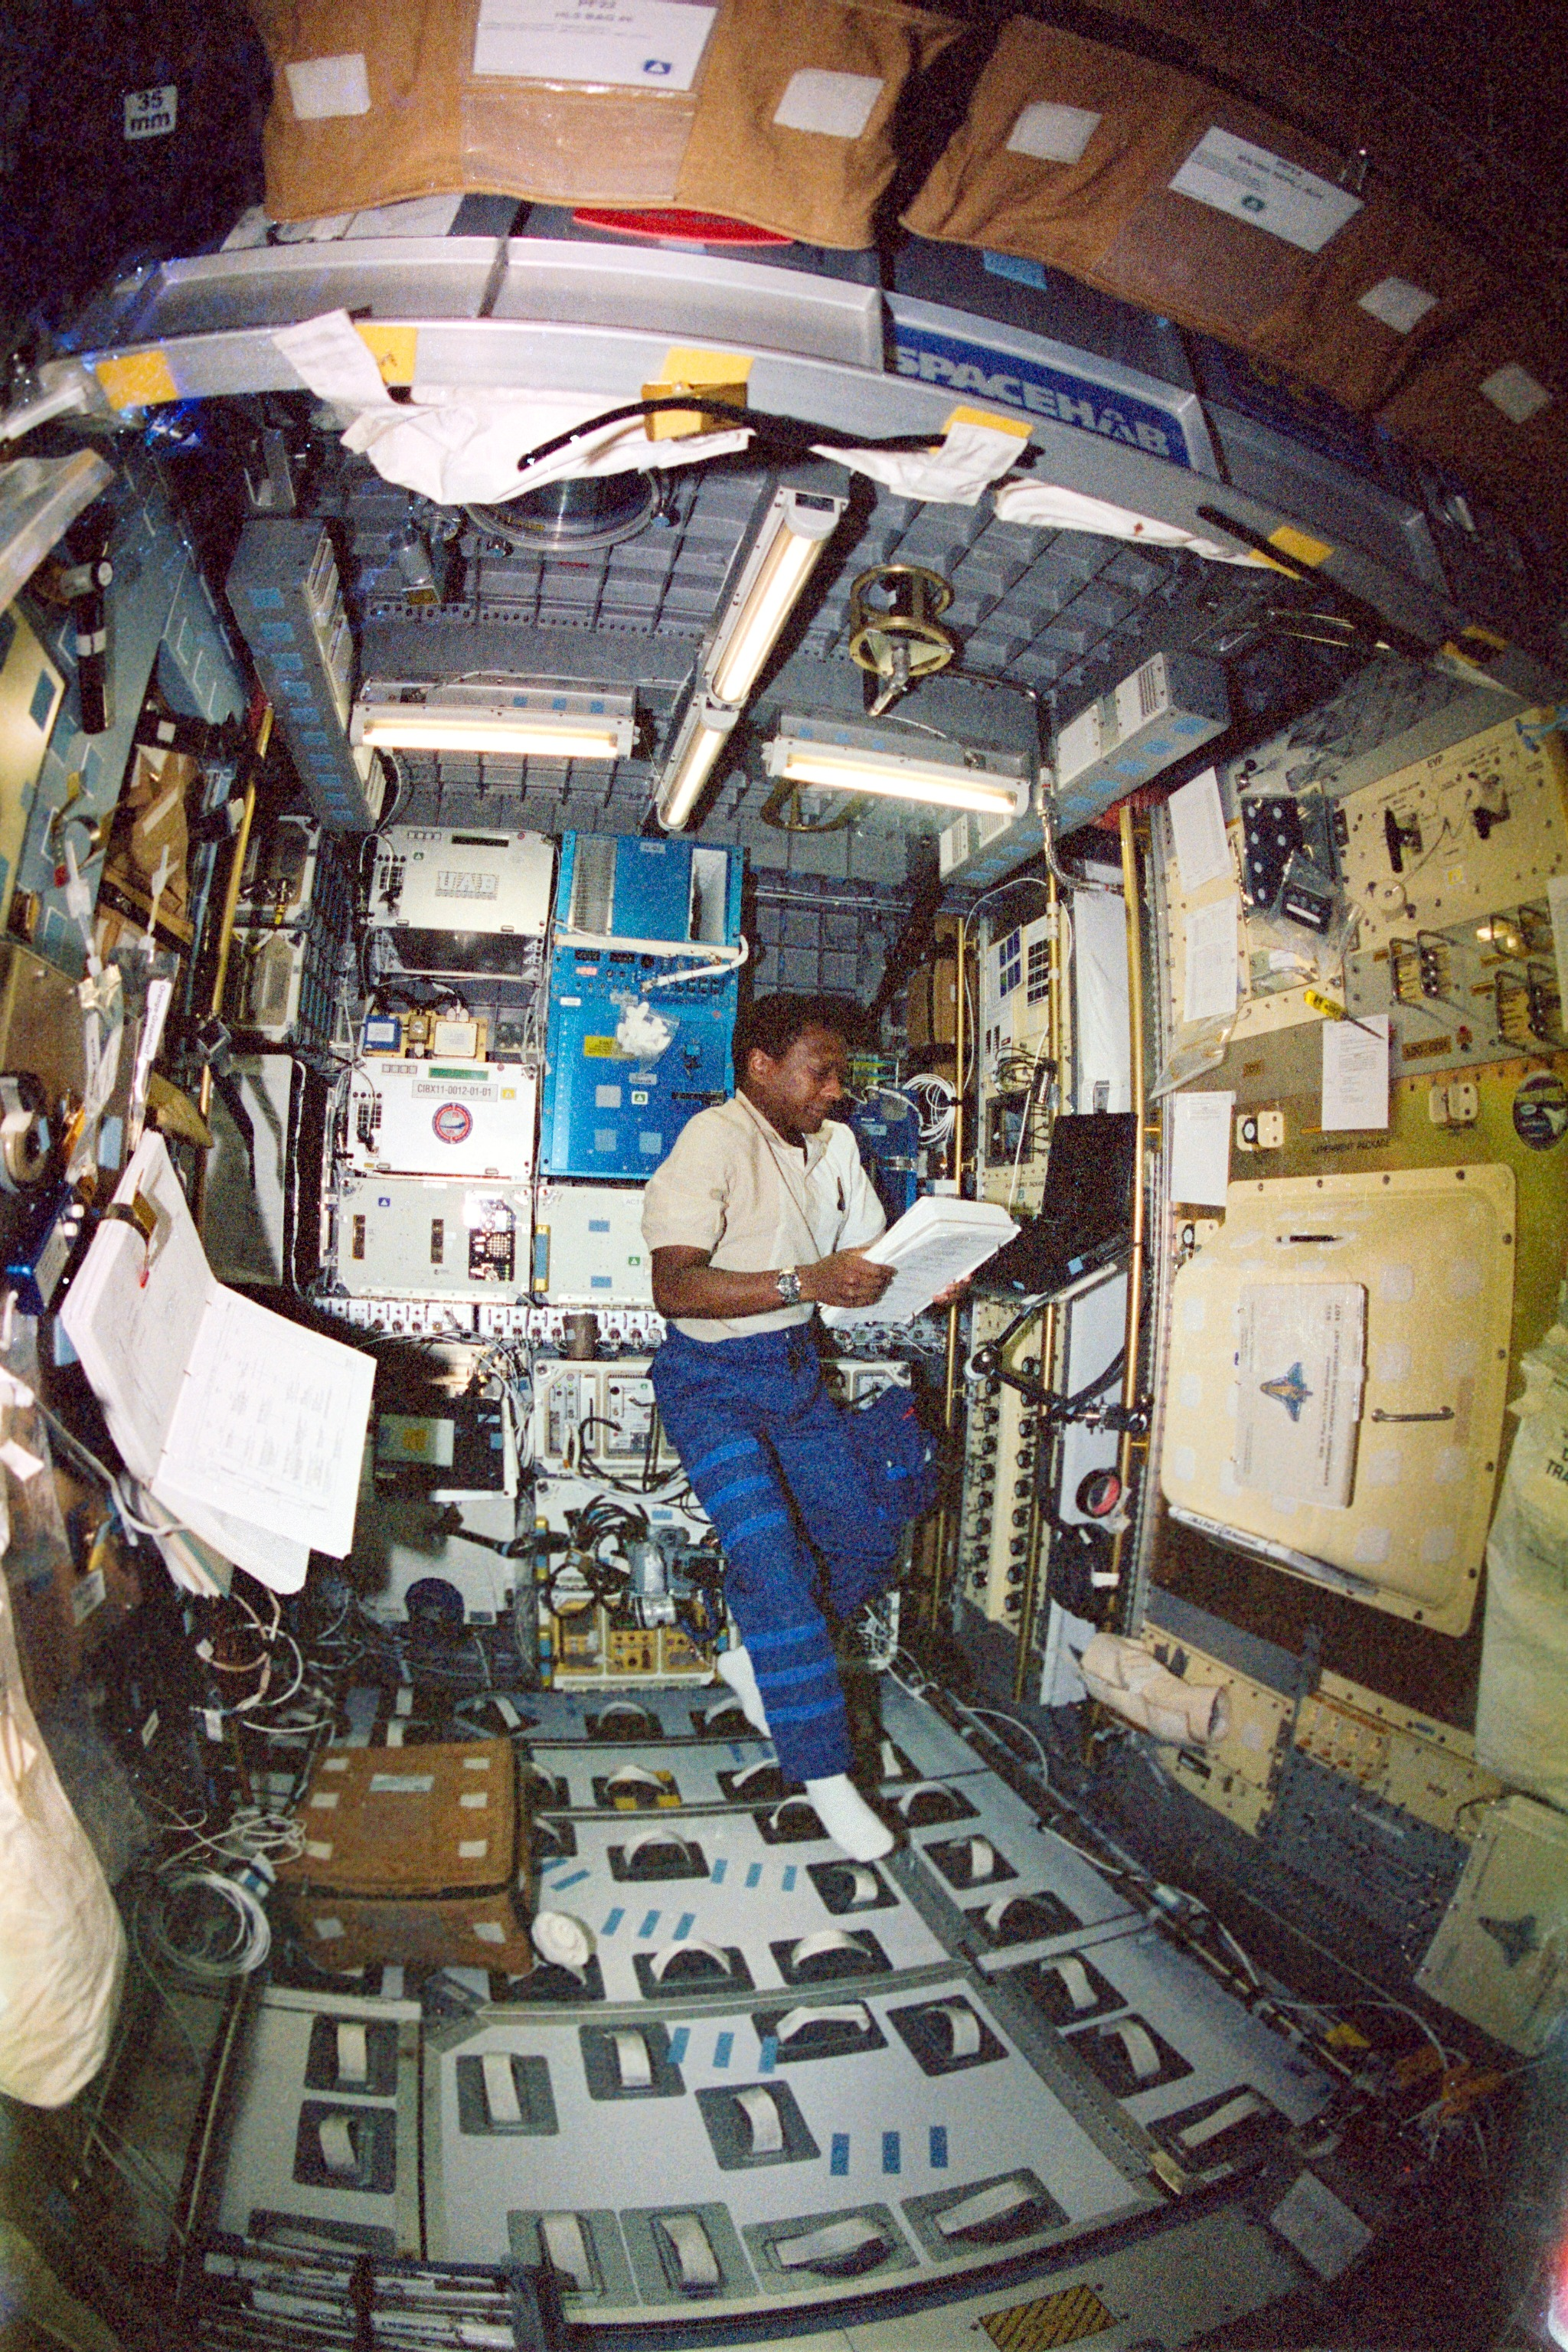 Astronaut Michael P. Anderson on STS-107